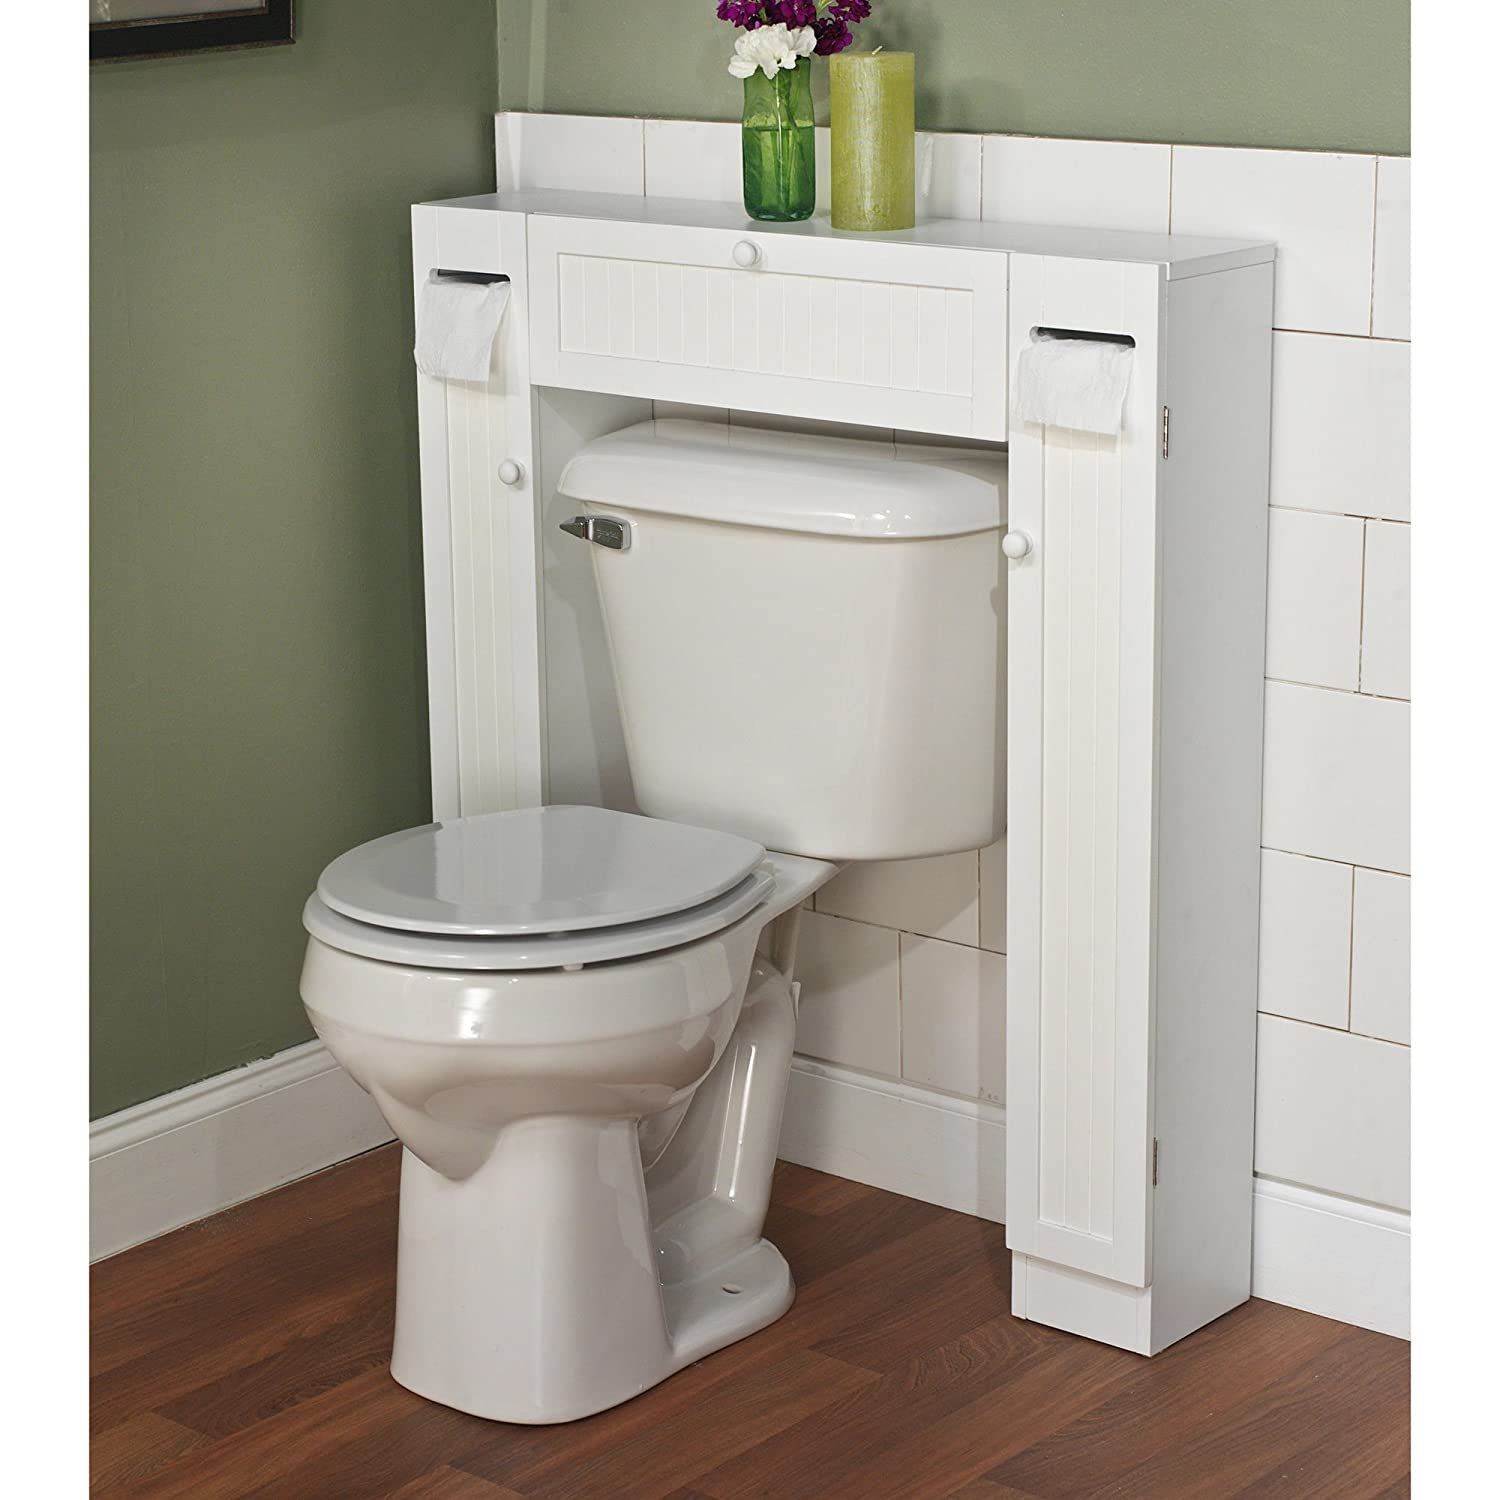 Over The Toilet Space Saver By Simple Living 1 Center Cabinet And 2  Side Cabinets In White Wood Material Gives Extra Storage For Every Bathroom